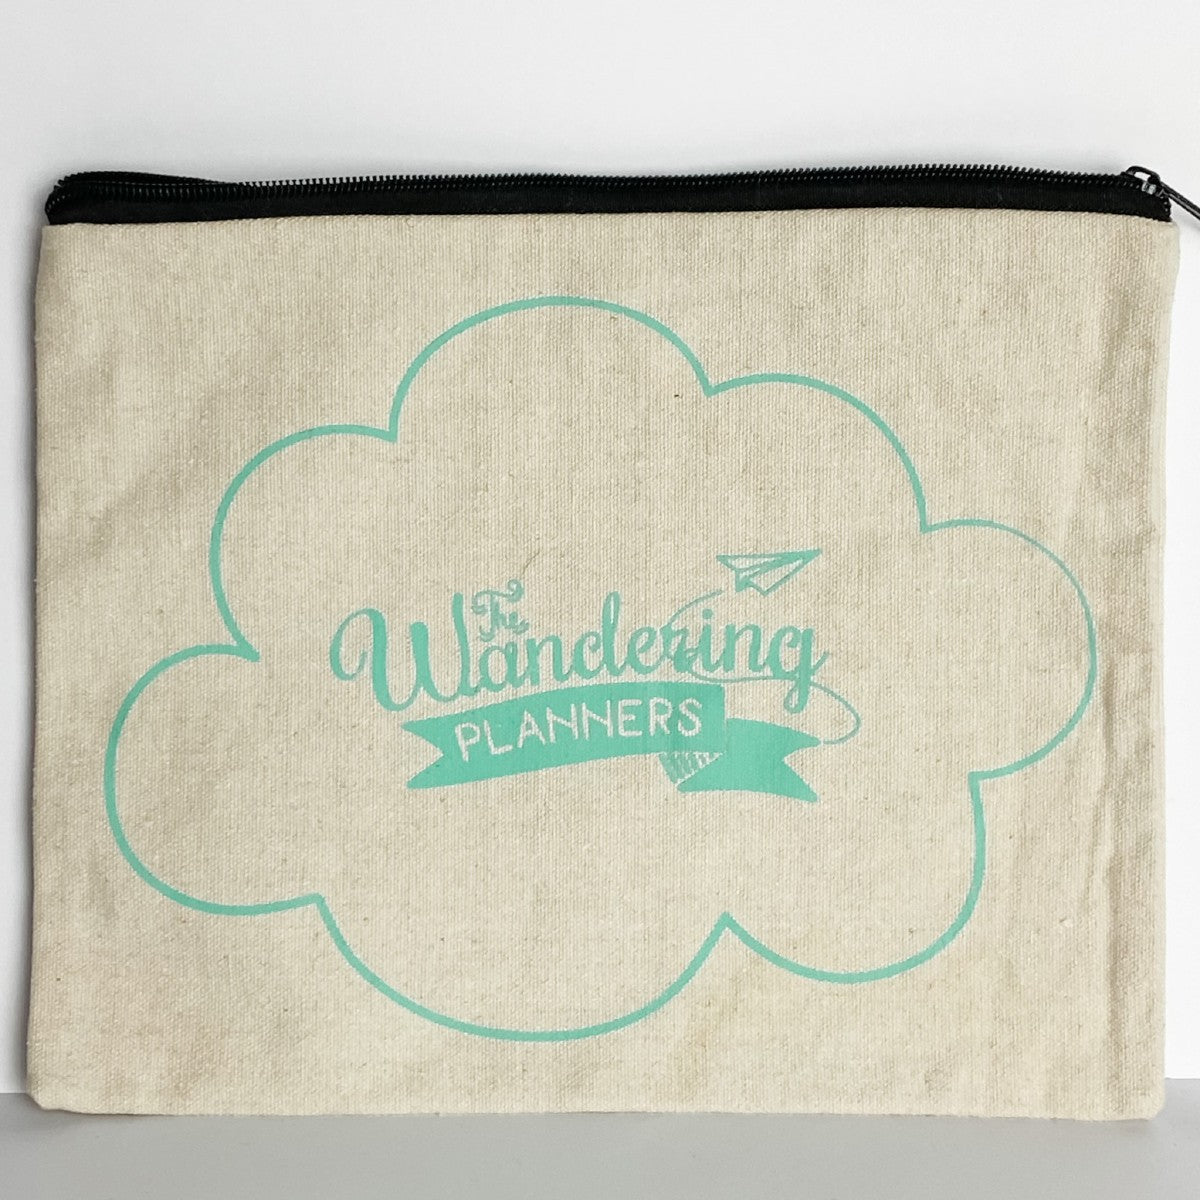 Collector Canvas Bag - Wandering Planners